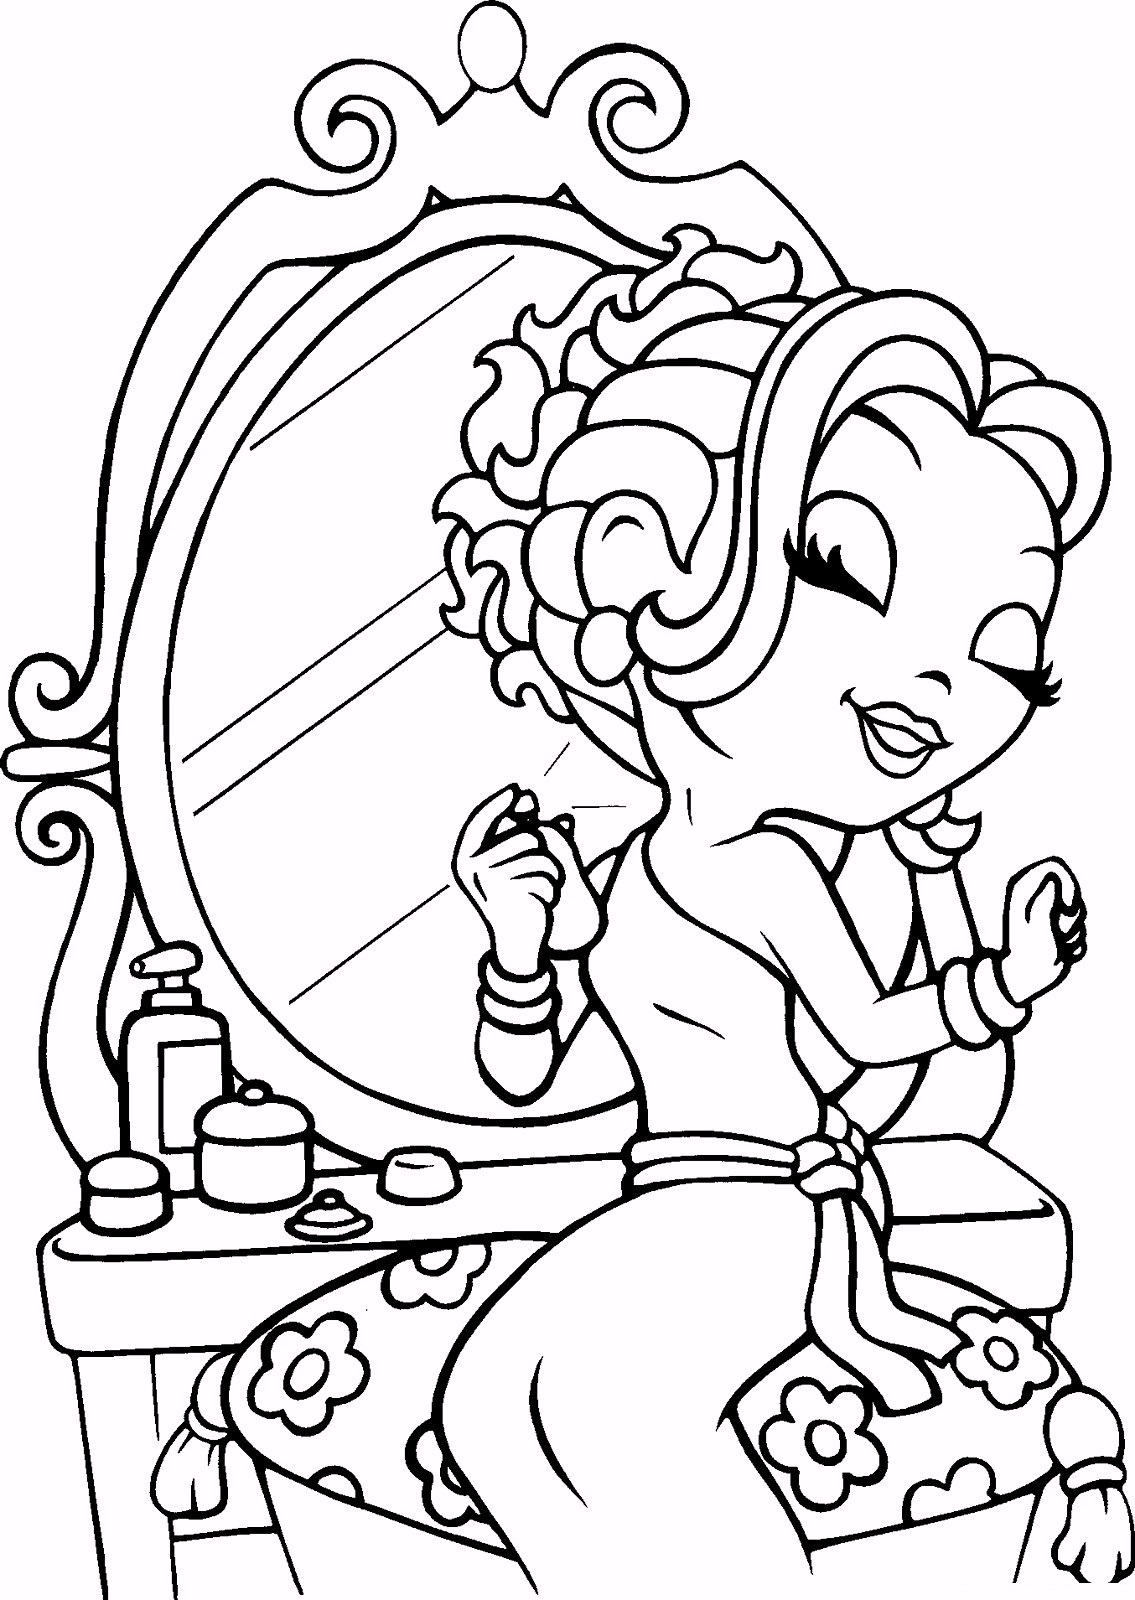 lisa-frank-coloring-pages